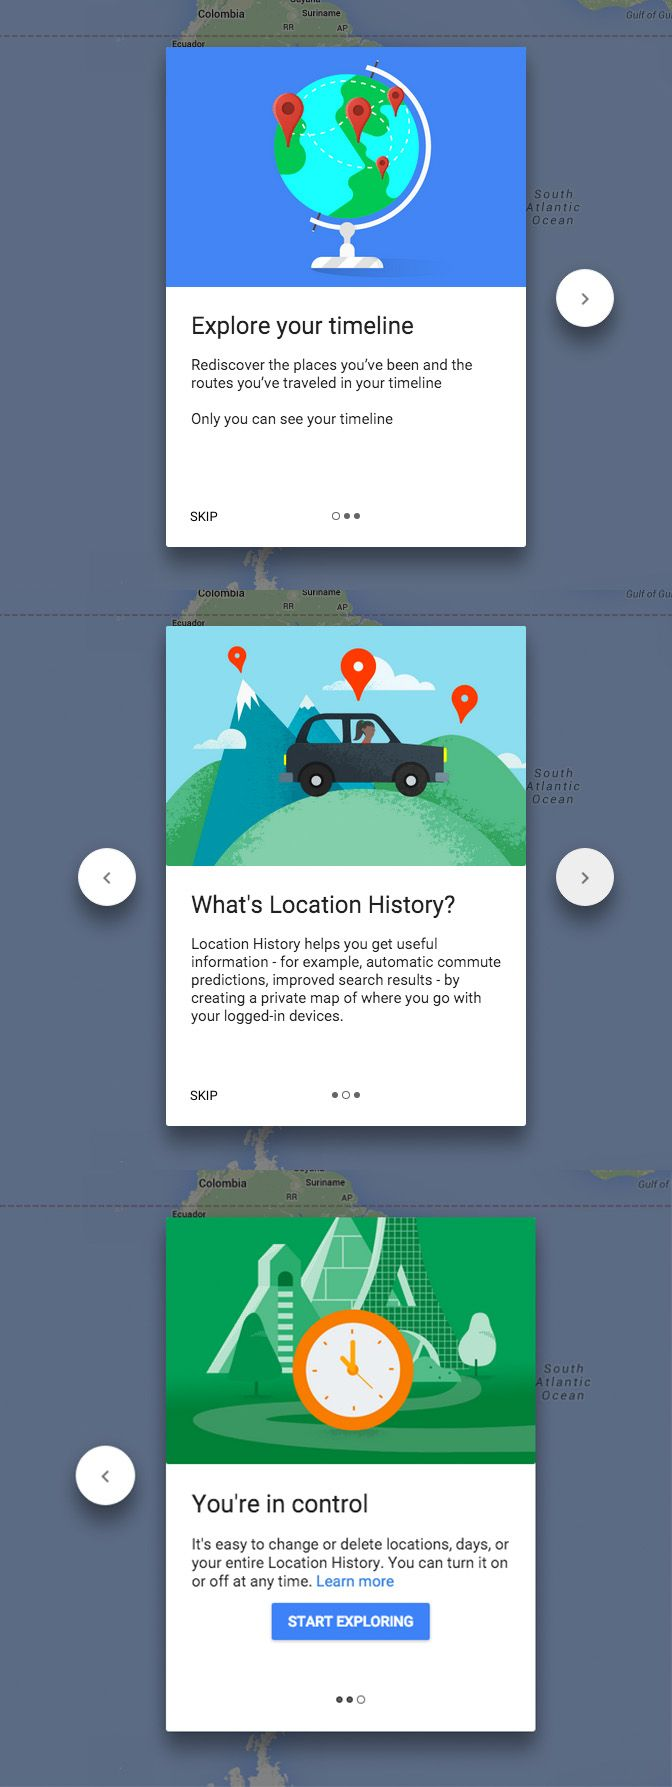 1004 best UX images on Pinterest | User interface, User interface ...